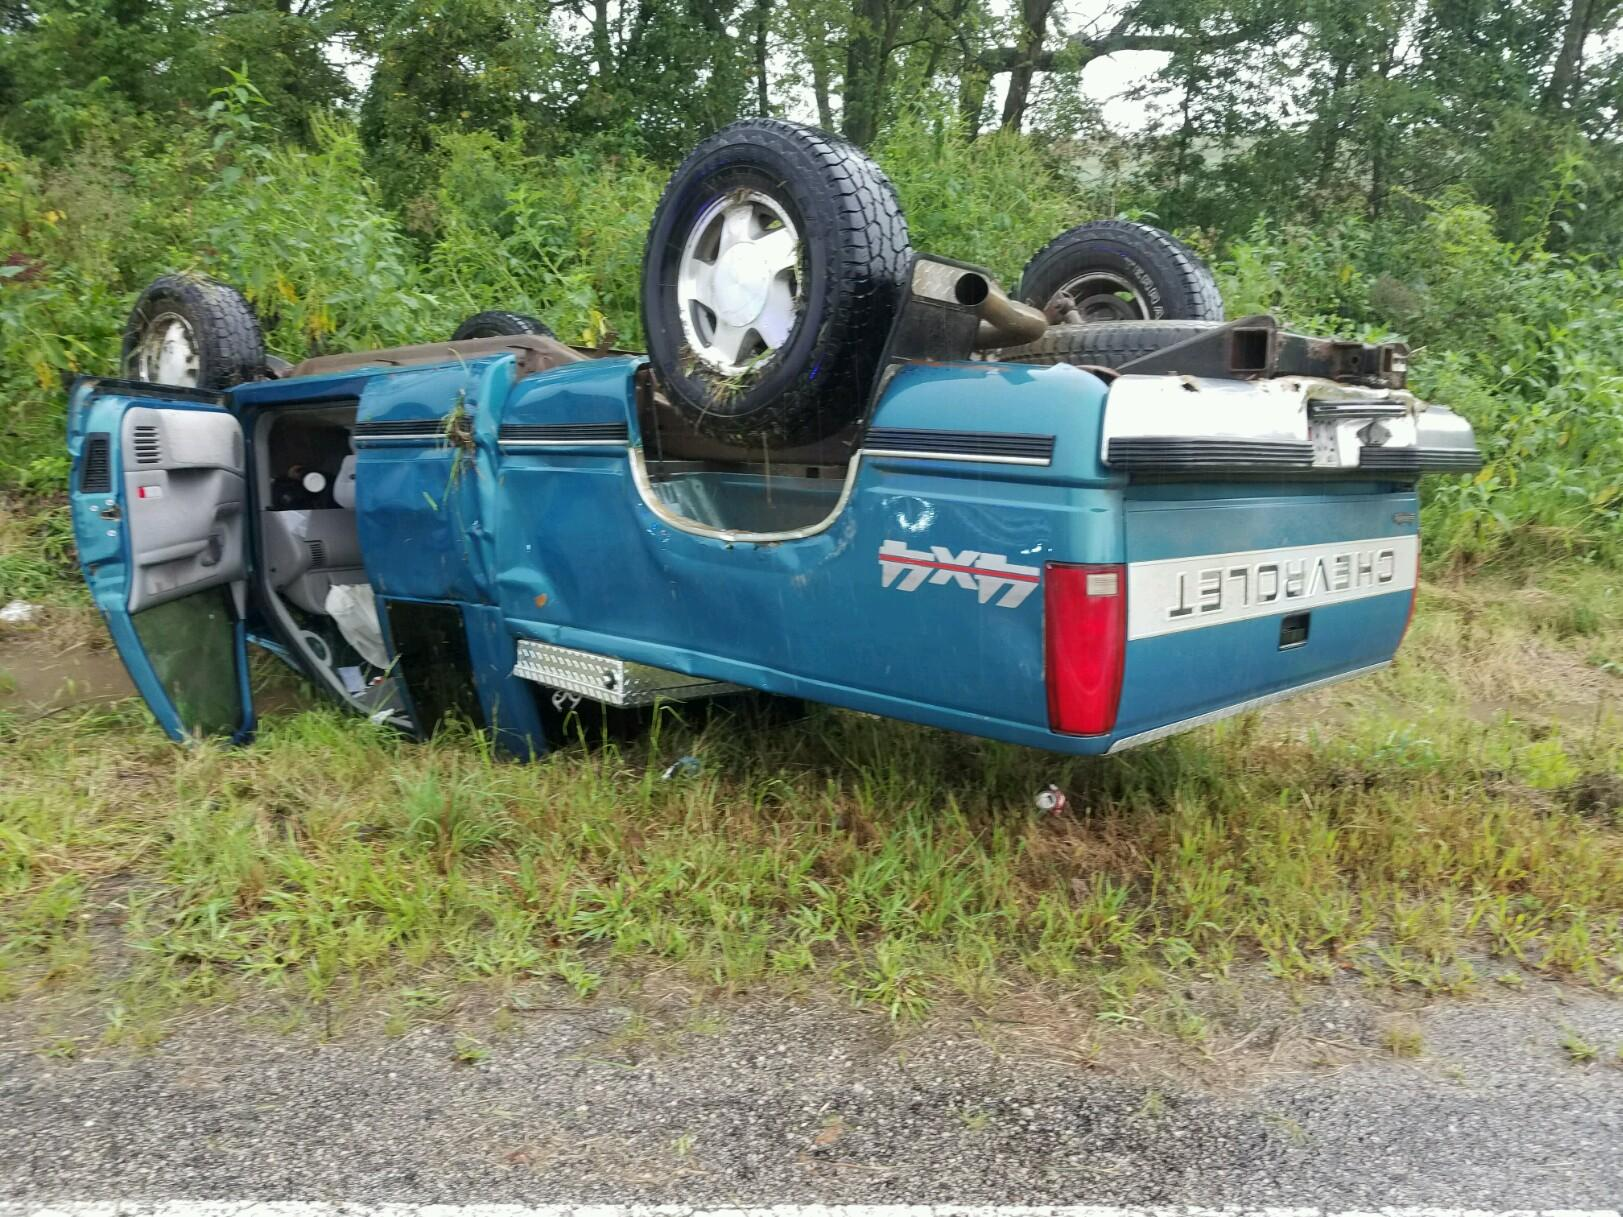 A pickup overturned during a crash in Howard County